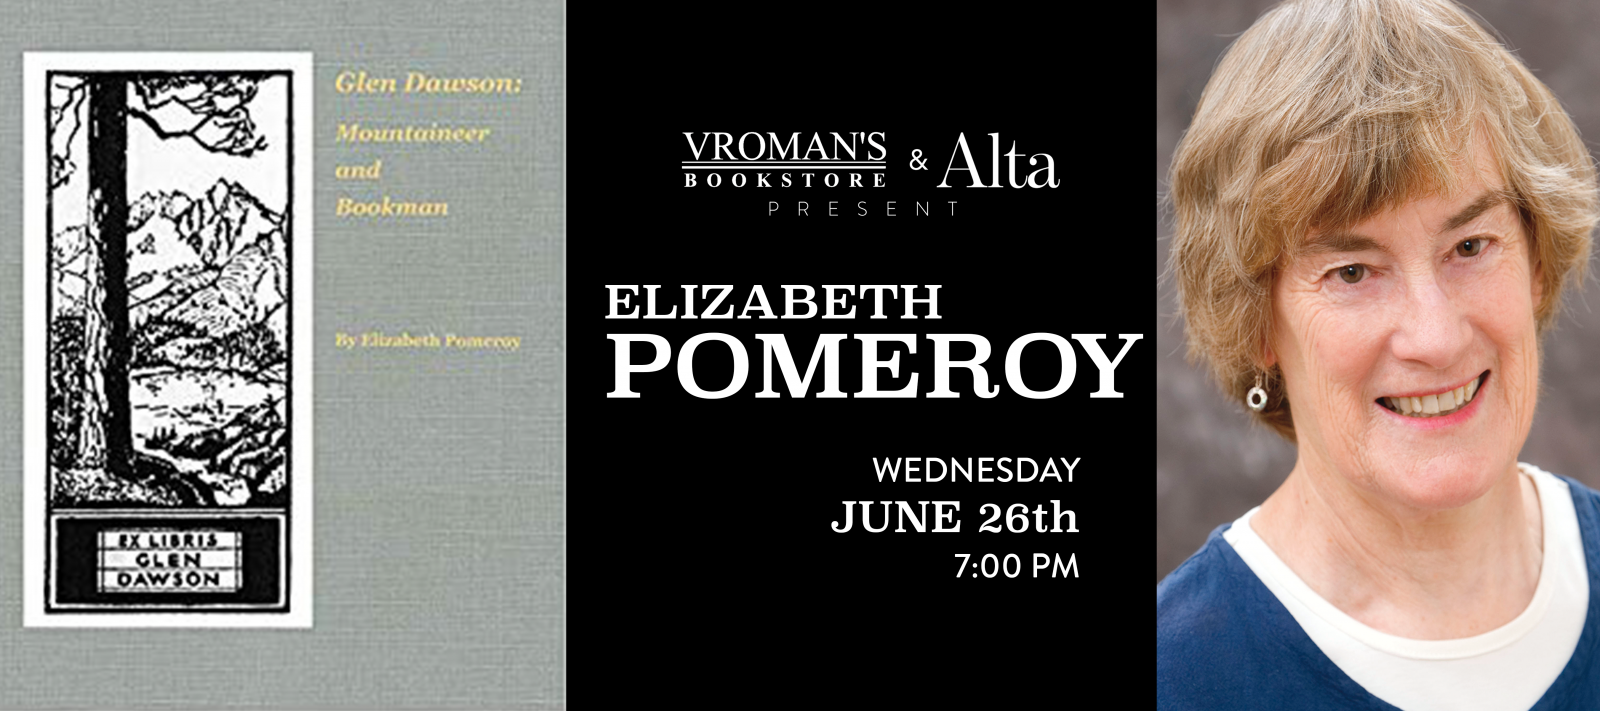 Elizabeth Pomeroy book signing Wednesday June 26th at 7pm